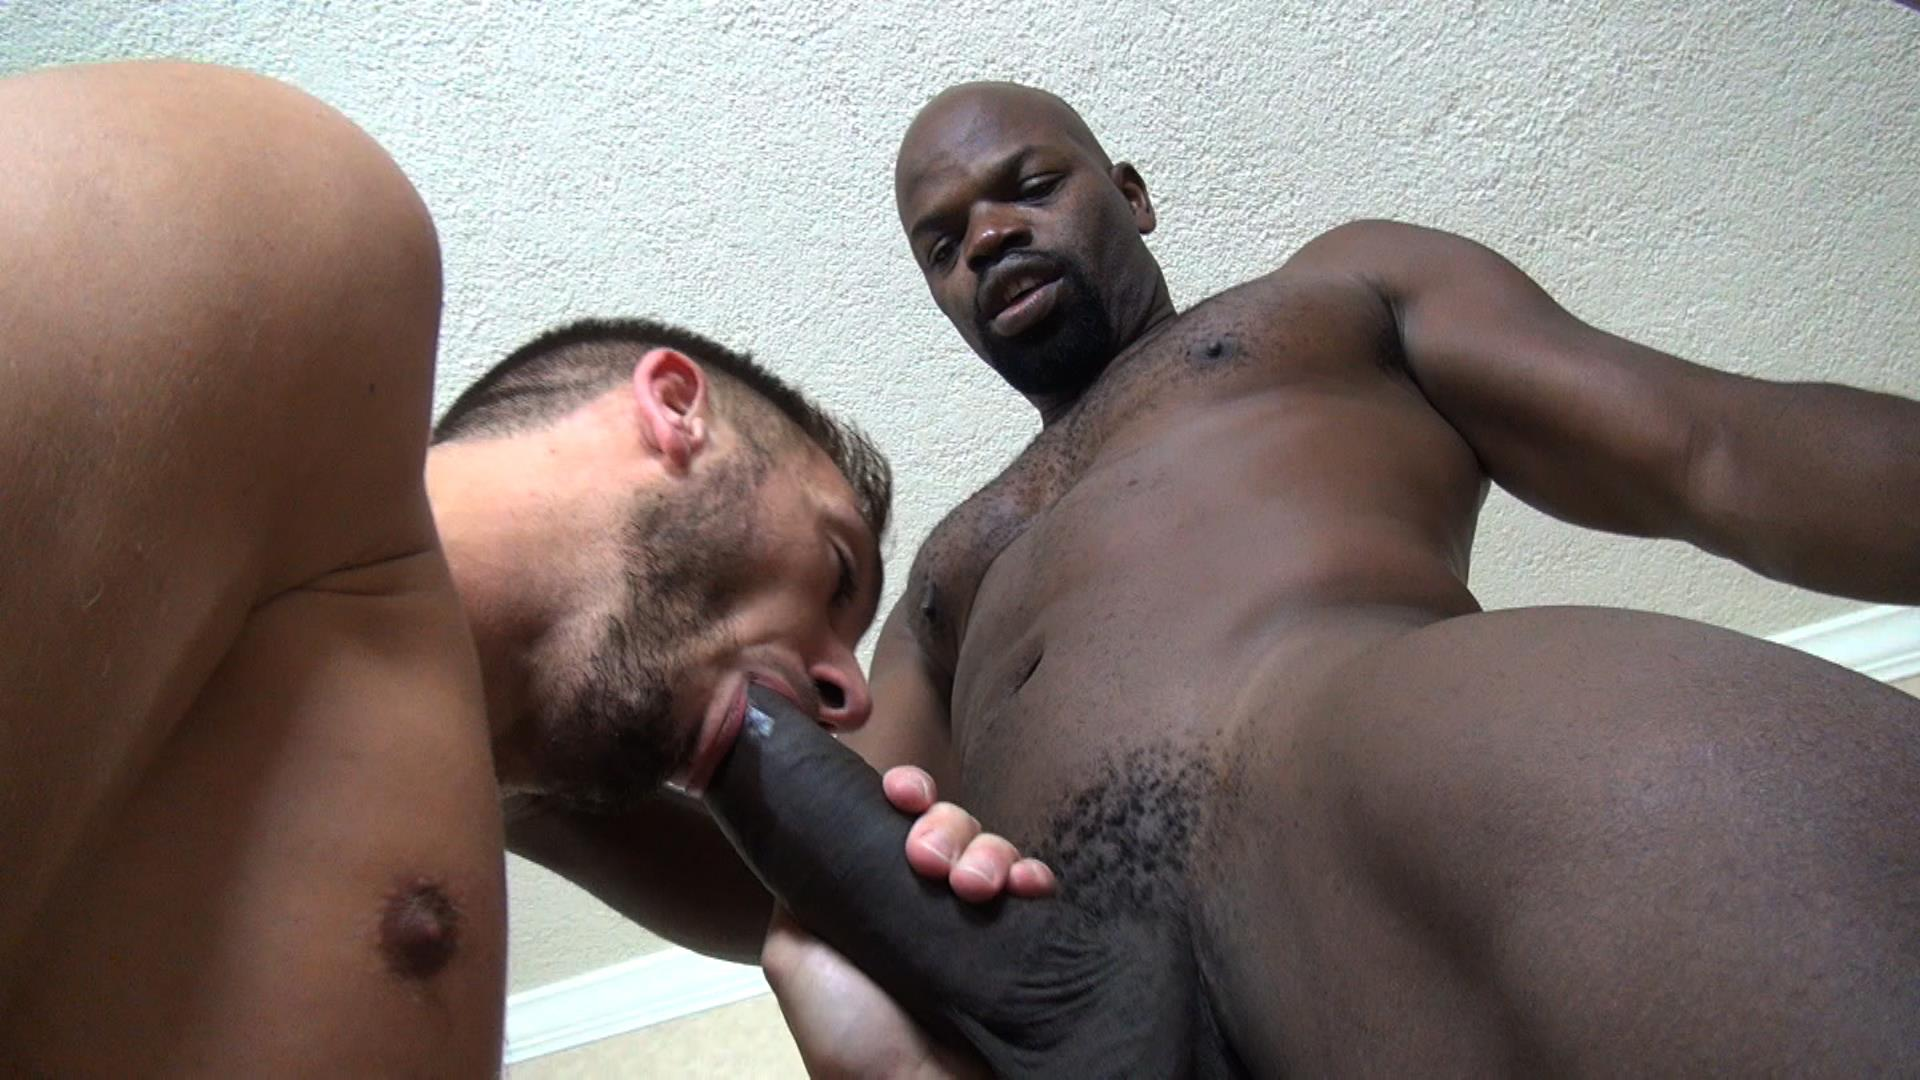 Gay interracial fucking and cocksucking - Porn archive.